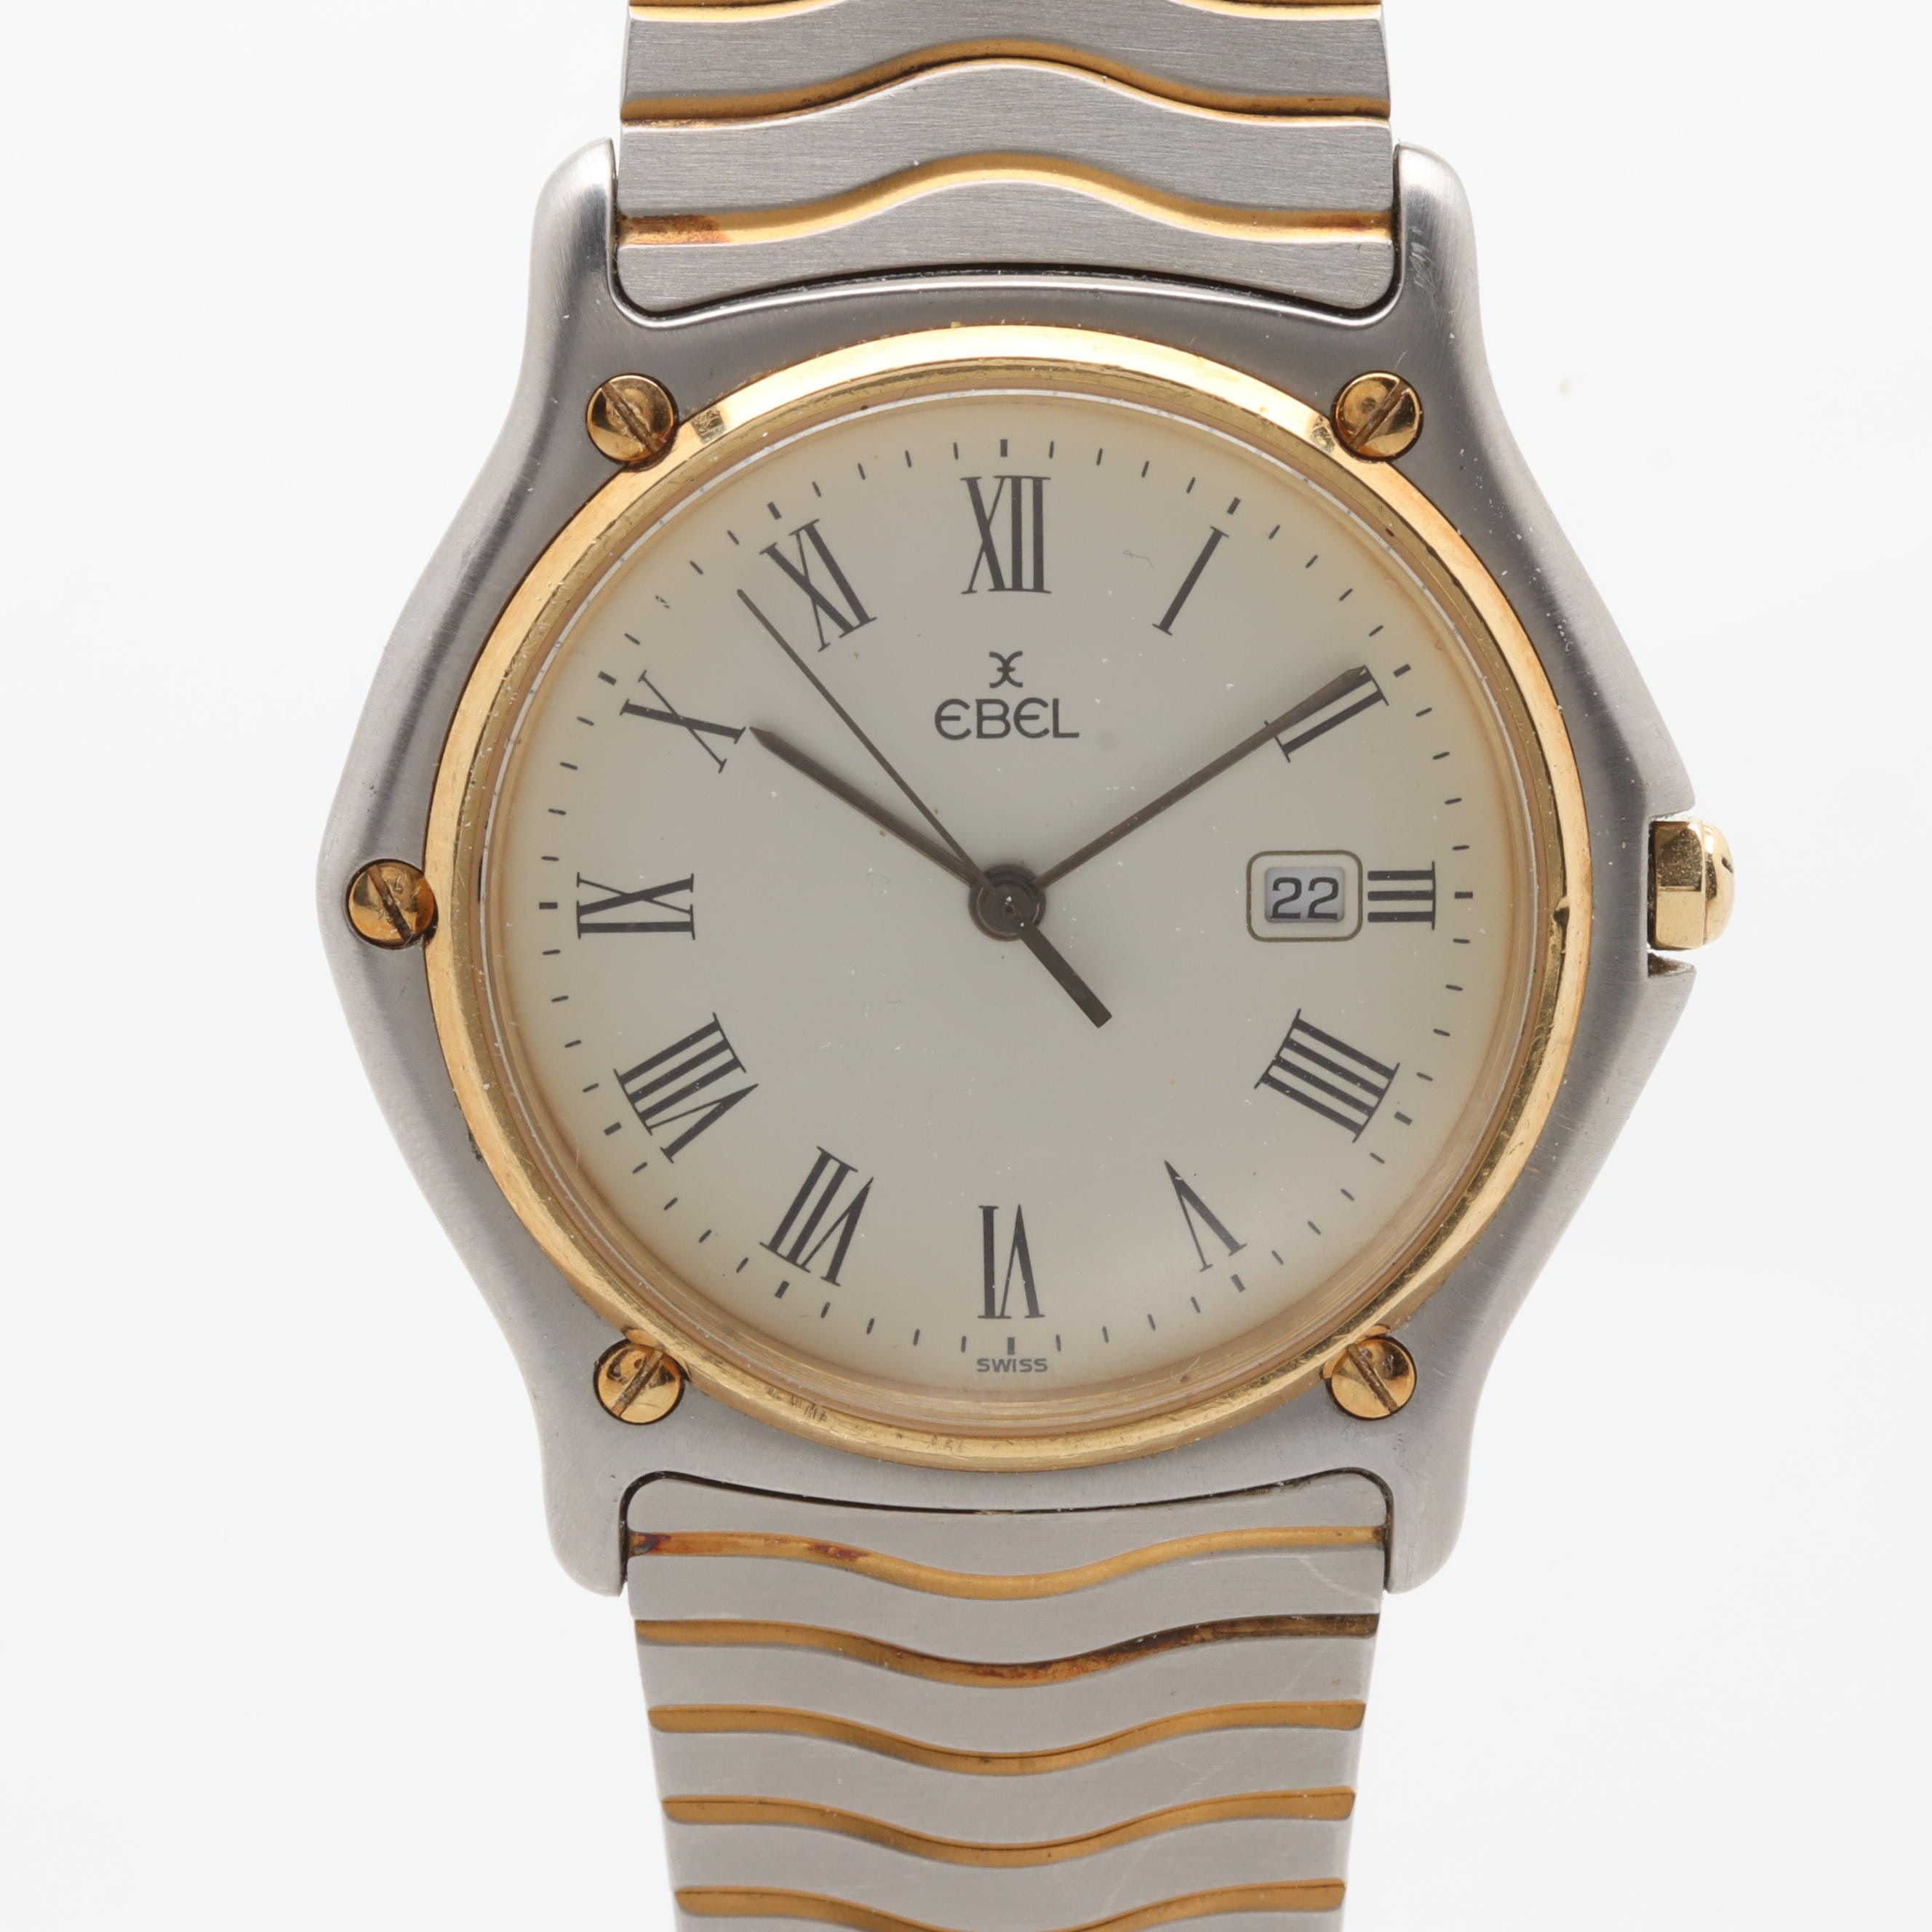 Ebel Stainless Steel and 18K Yellow Gold Wristwatch